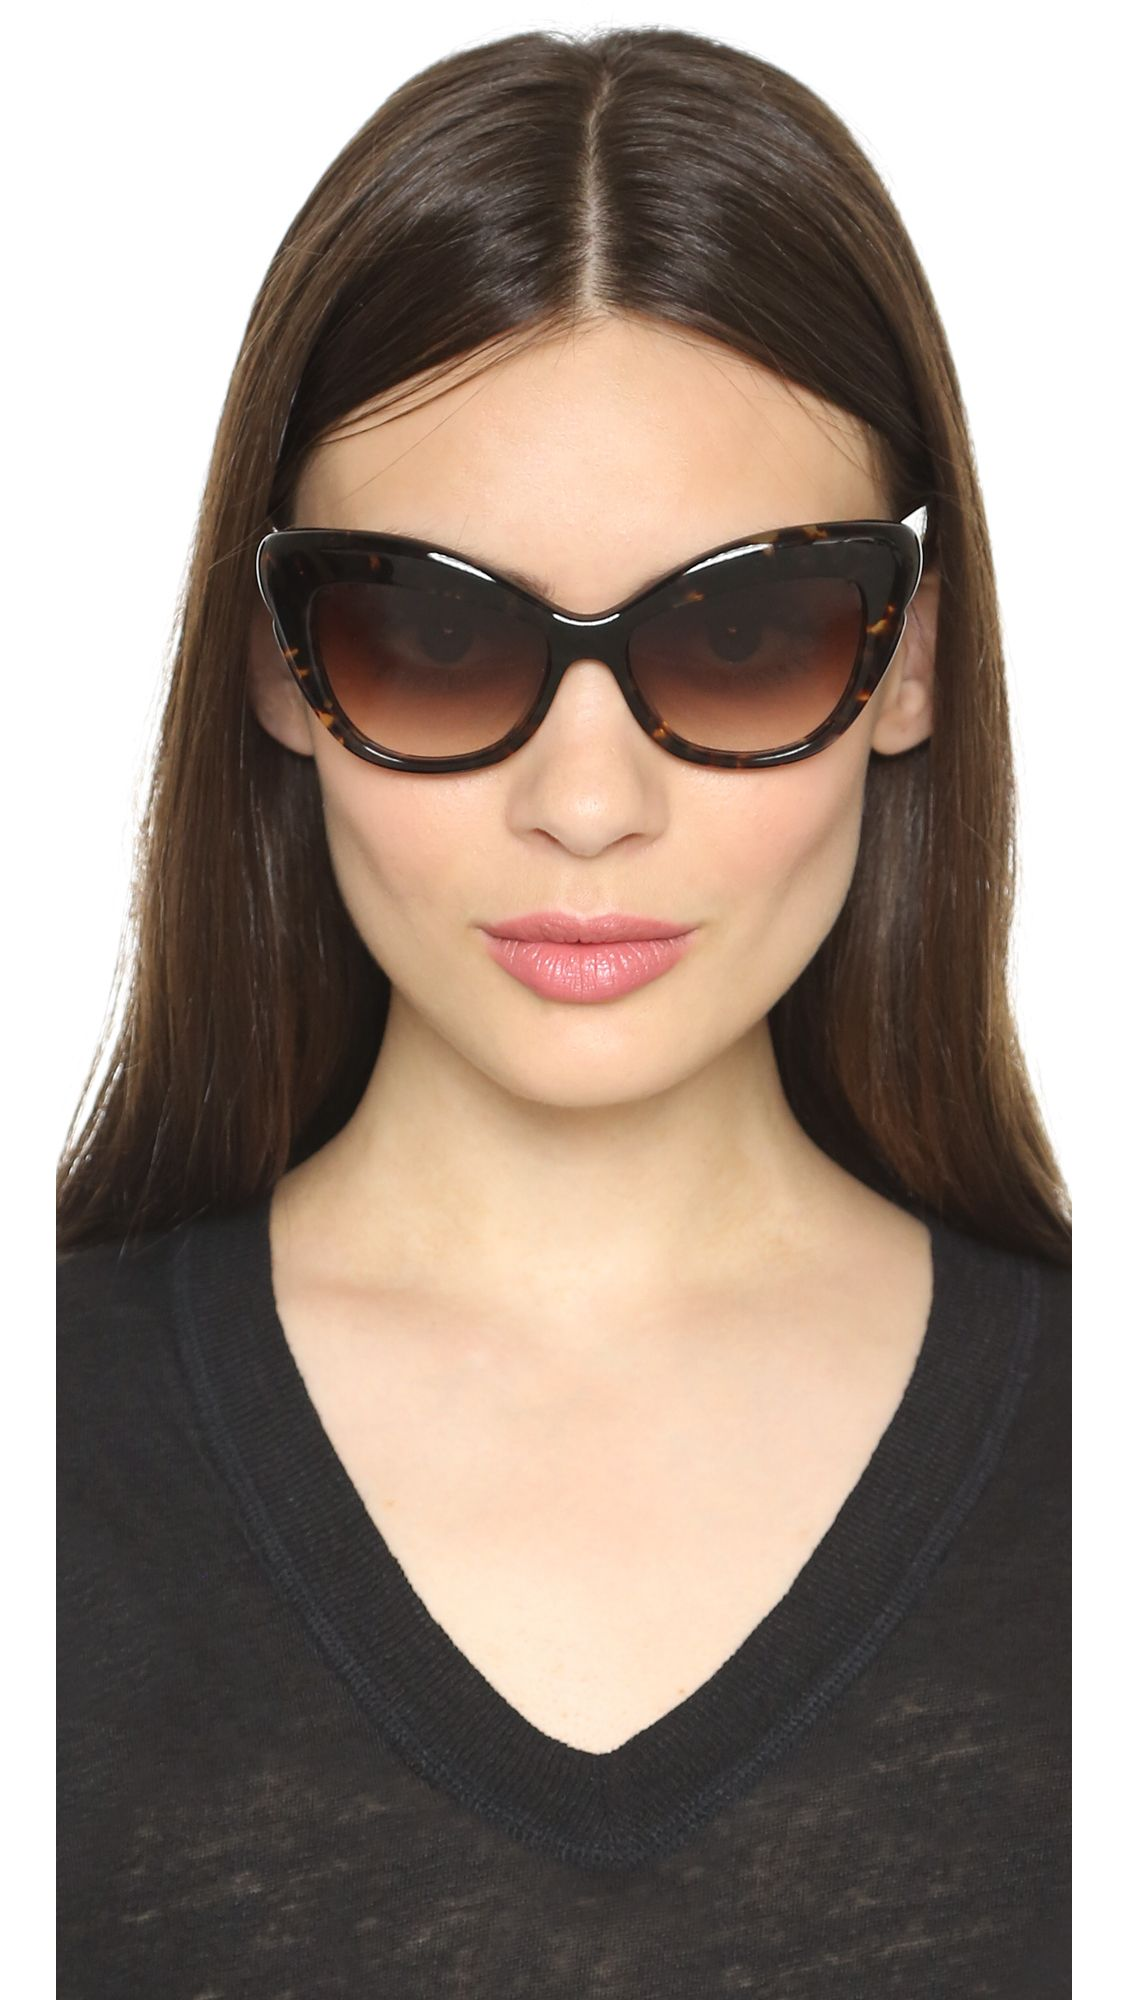 d3e614c9fed9 Odelia sunglasses by Kate Spade | Spectacular Spectacles ...